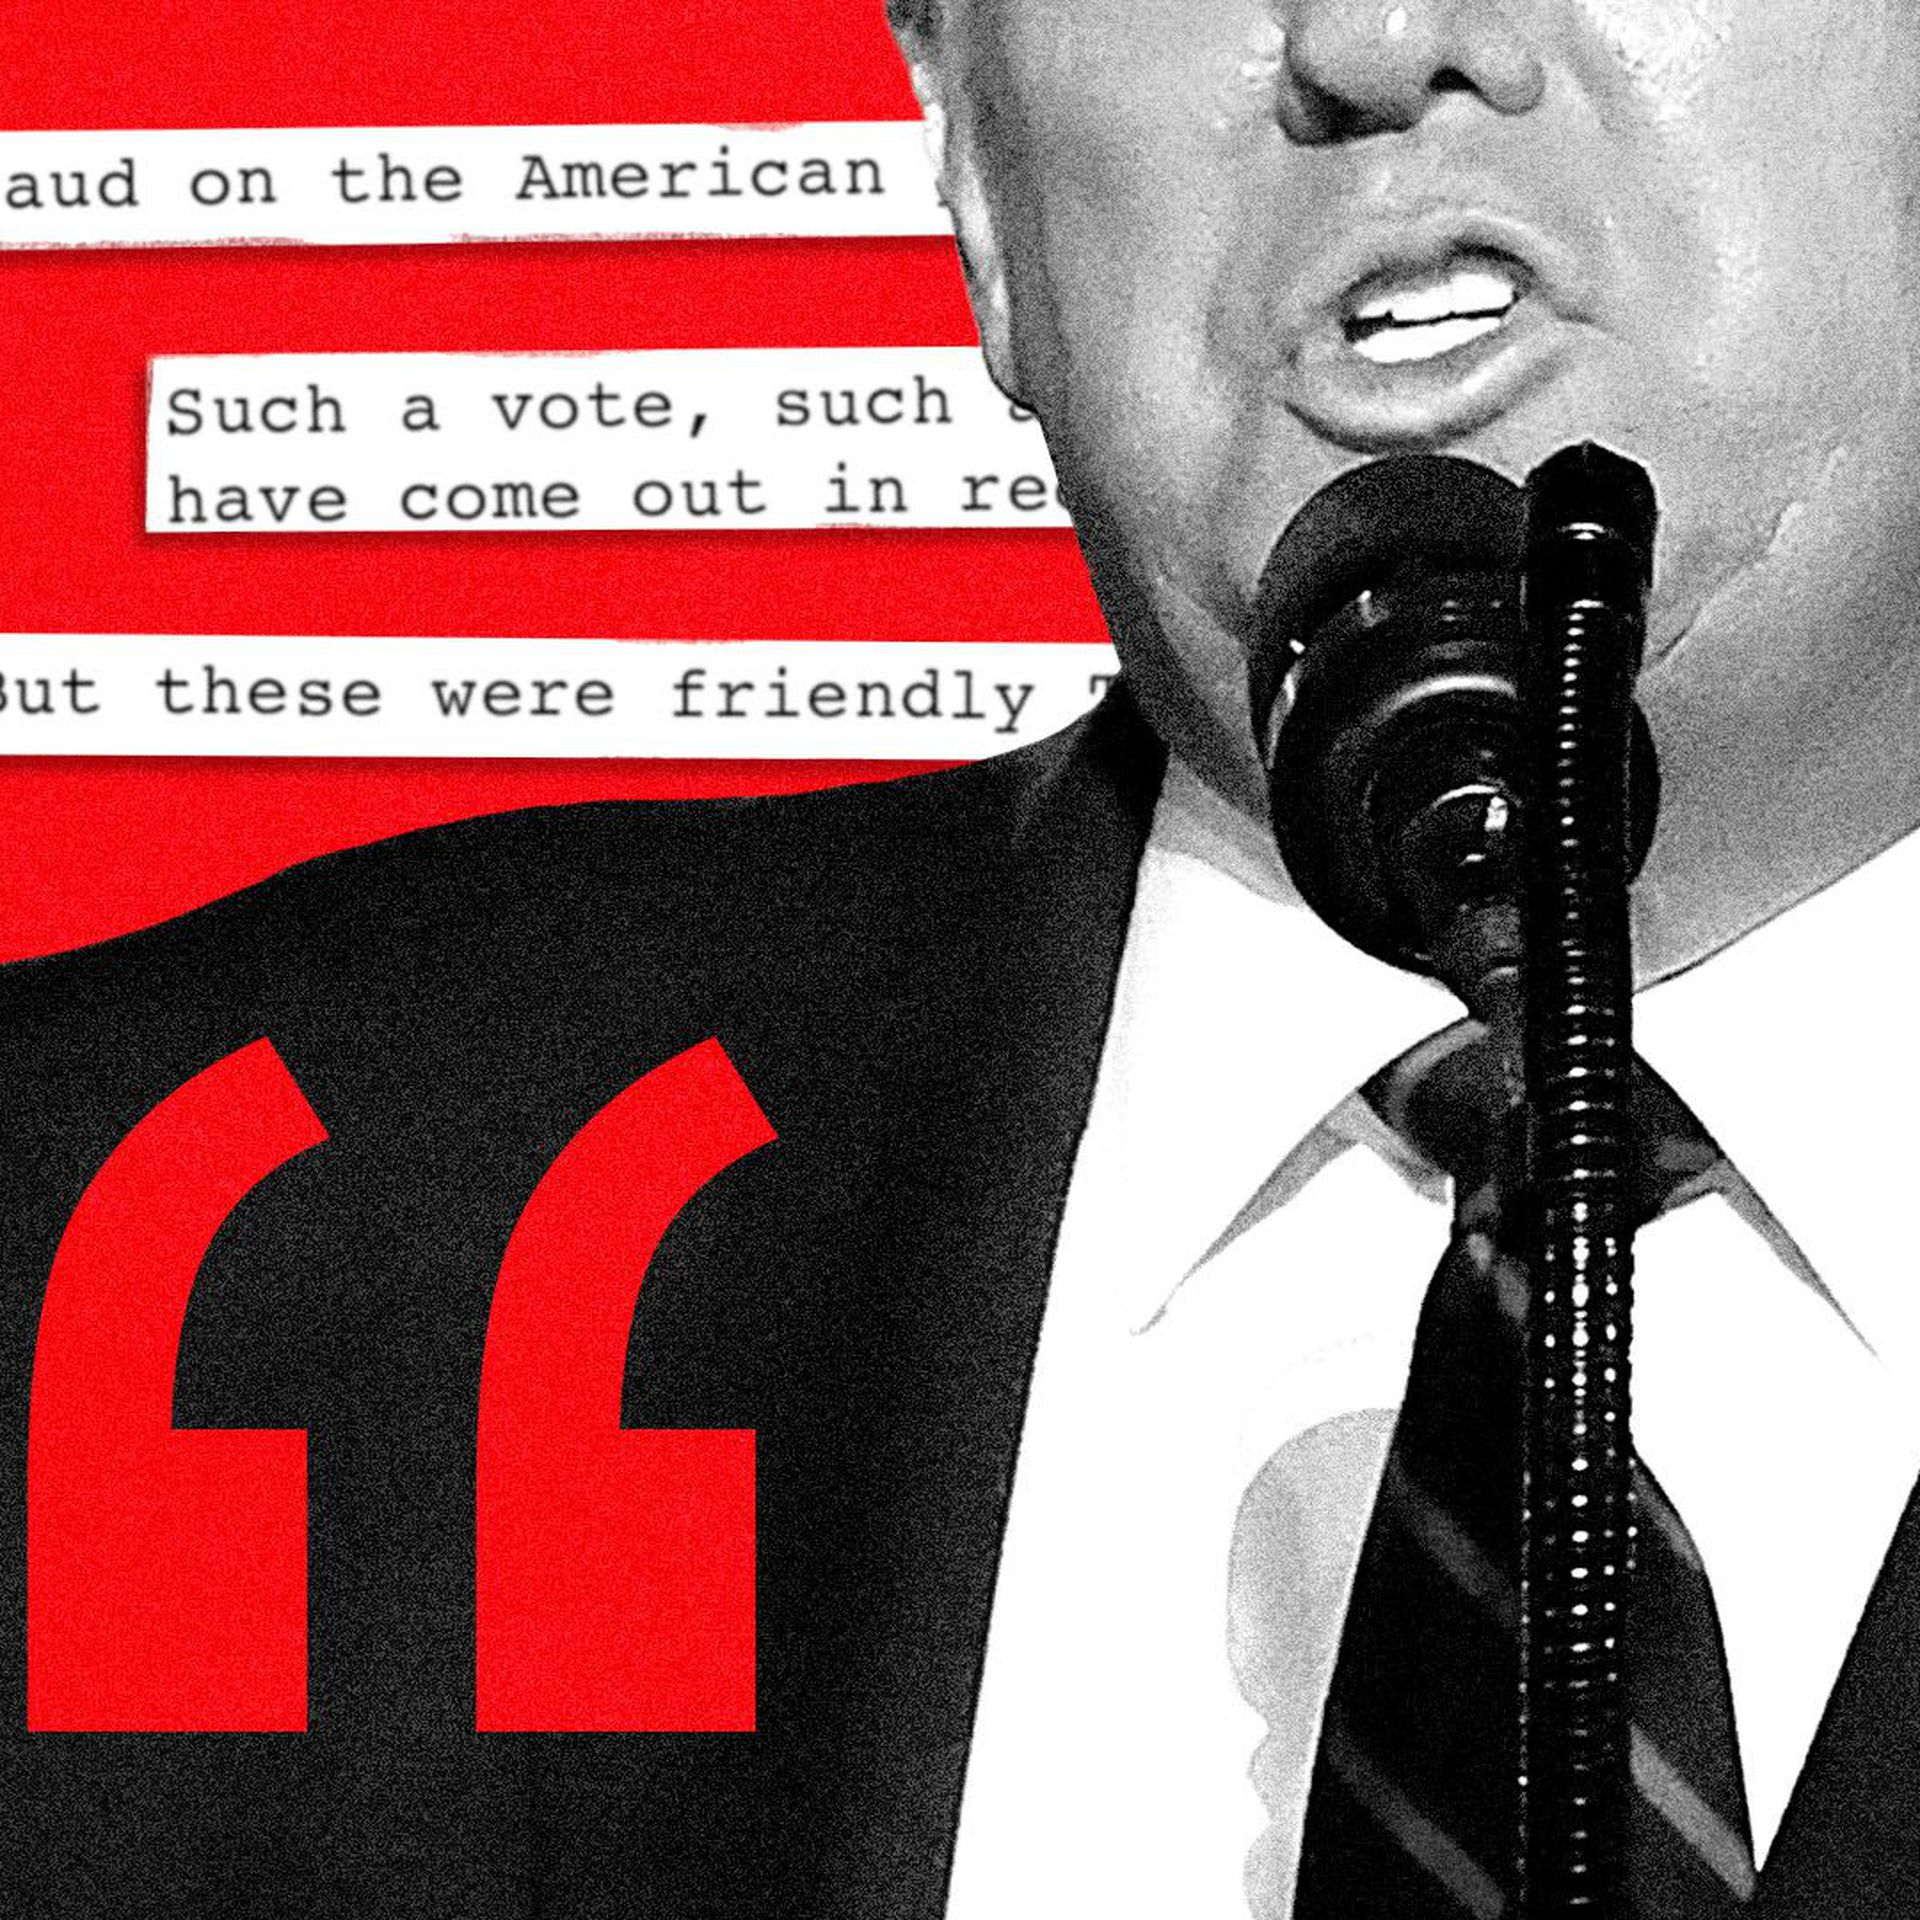 Photo illustration of Donald trump speaking with quotes from his election night speech in the background